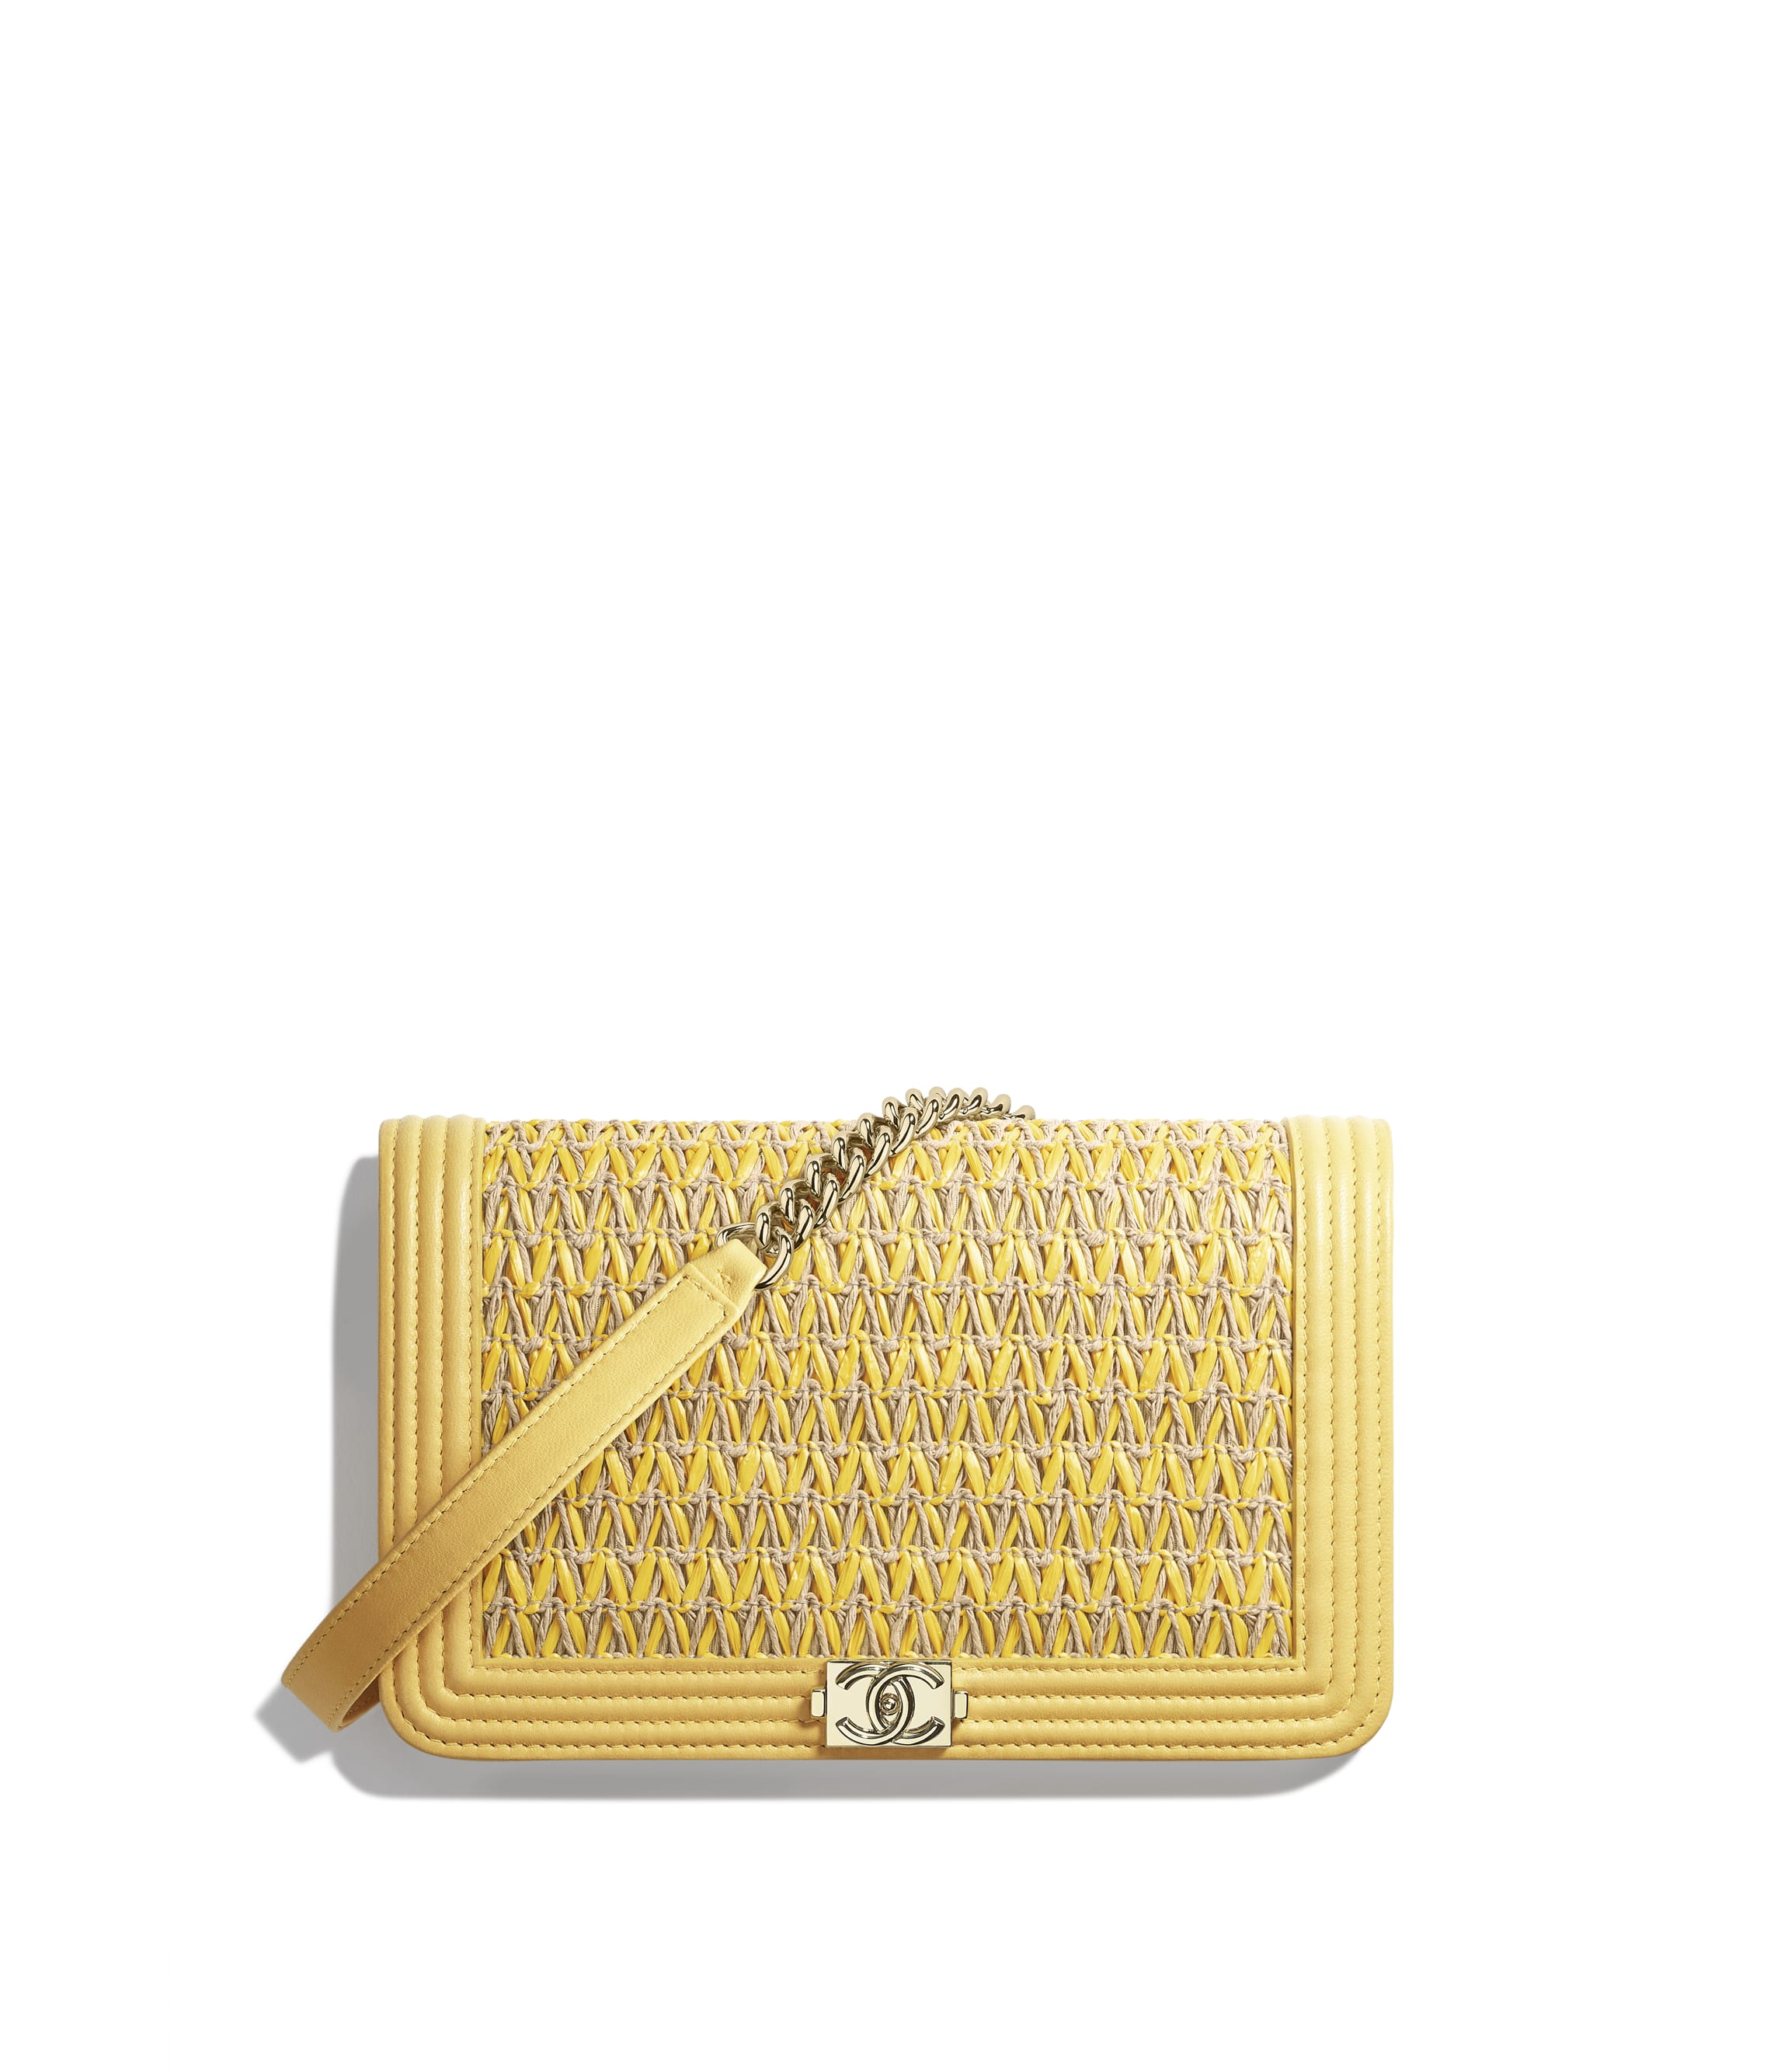 eab3547ffdb6 Wallets on chain - Small Leather Goods - CHANEL